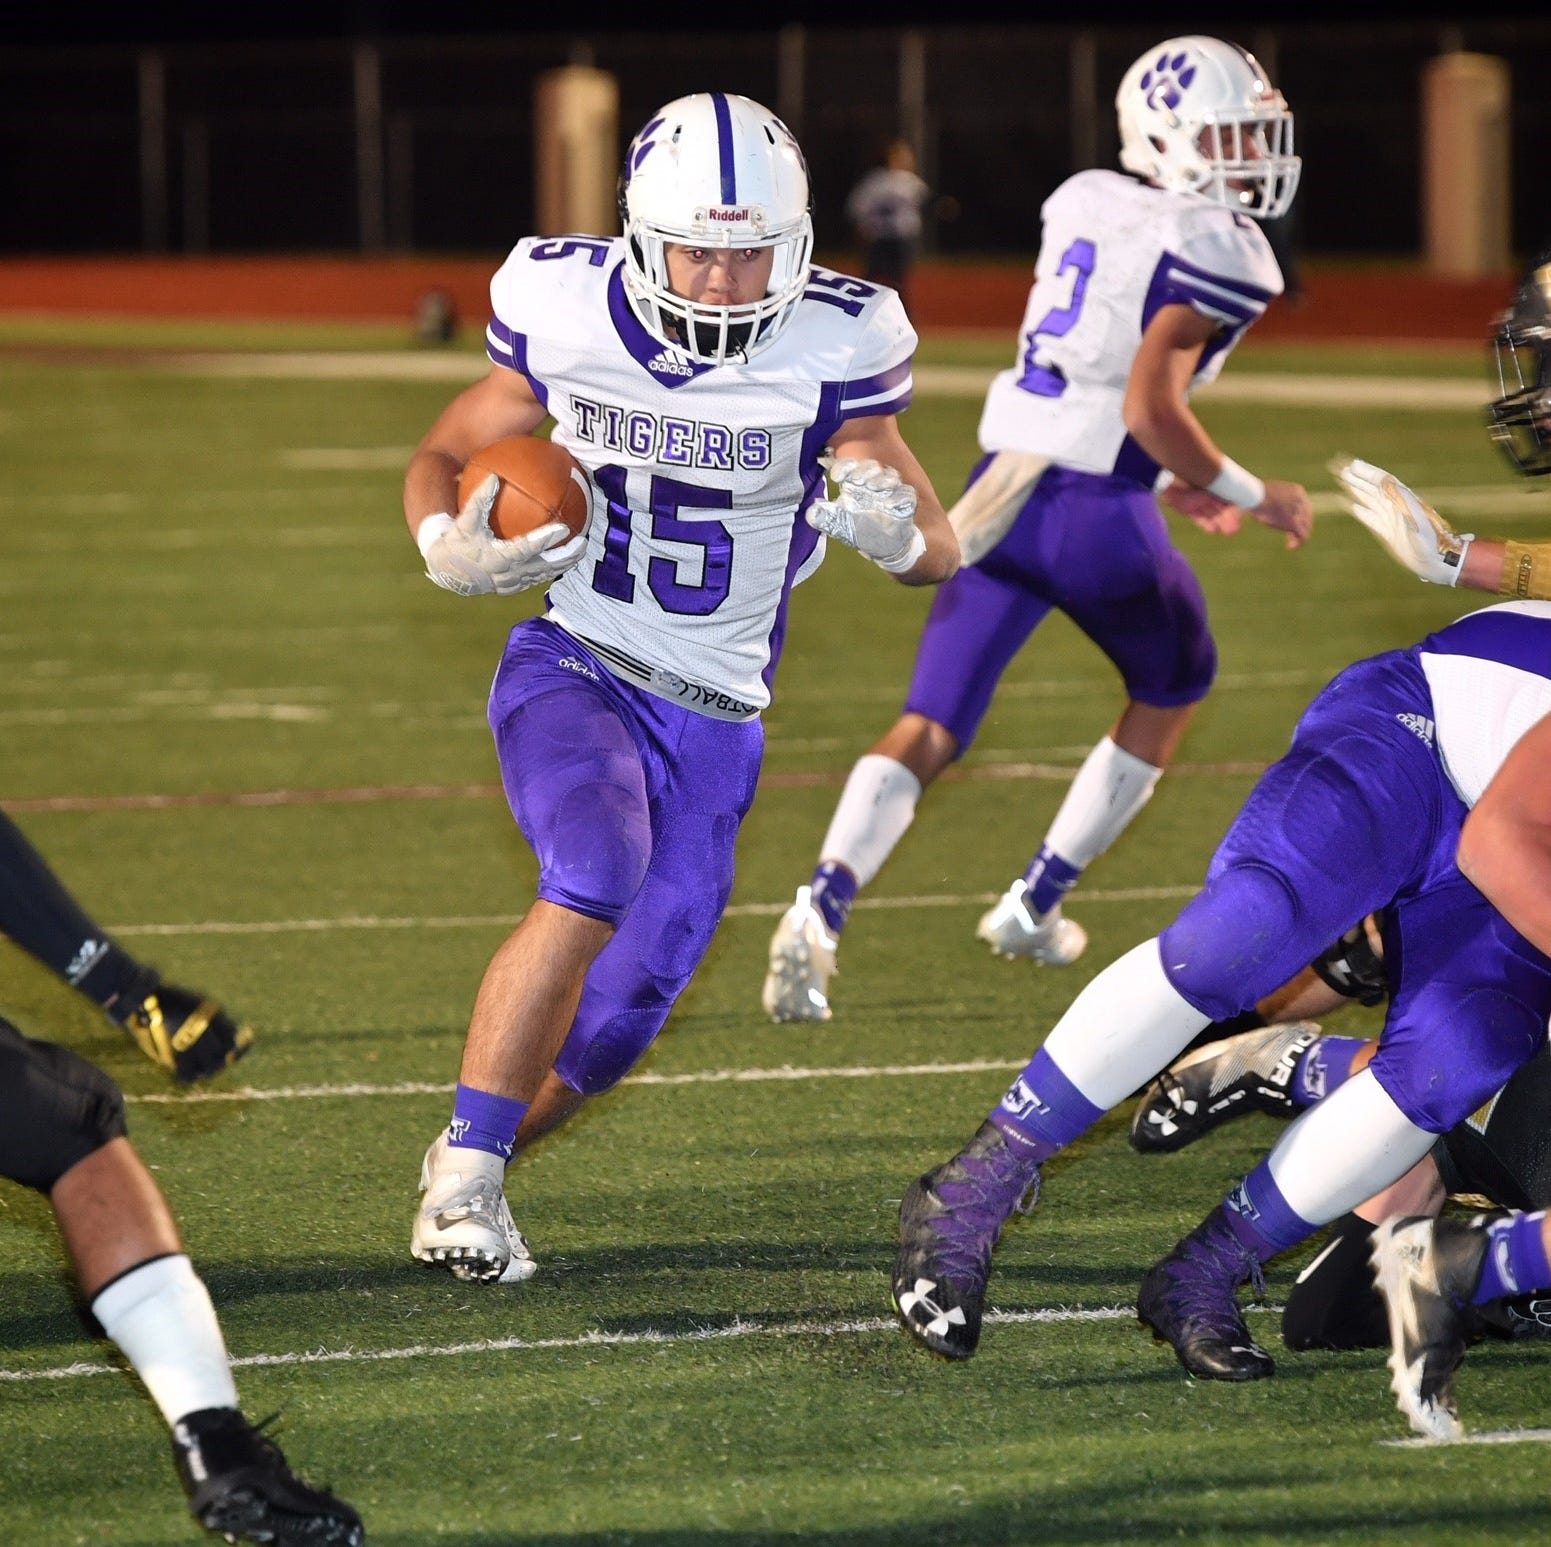 Jacksboro runningback Ethan Fudge (15) scored on this run against Henrietta Friday night during the first quarter of the 3A Division II Bi-District playoff in Bowie.